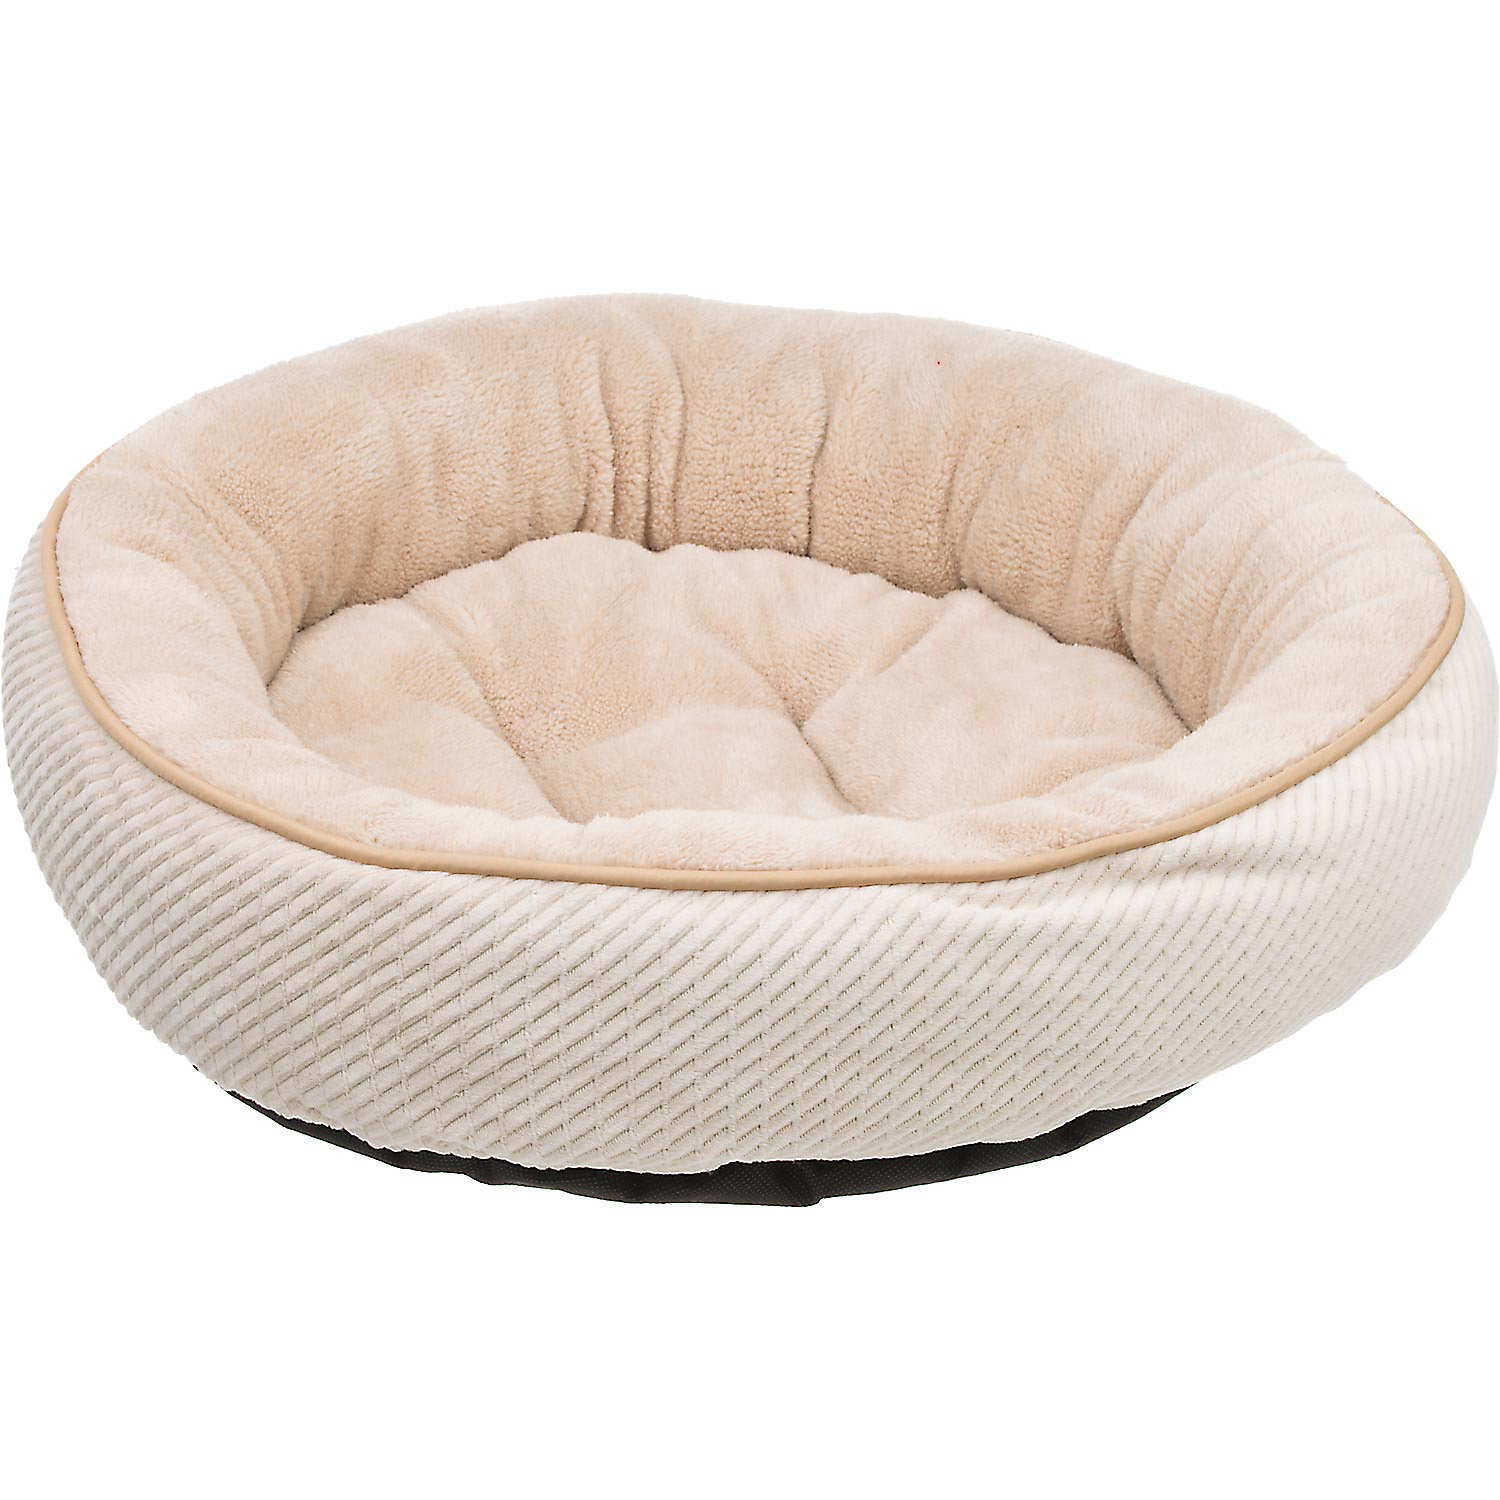 and with xxl fleece great petco regard wolfybeds bed excellent to beds cradle plan dog inside household notonthehighstreet new xl attractive